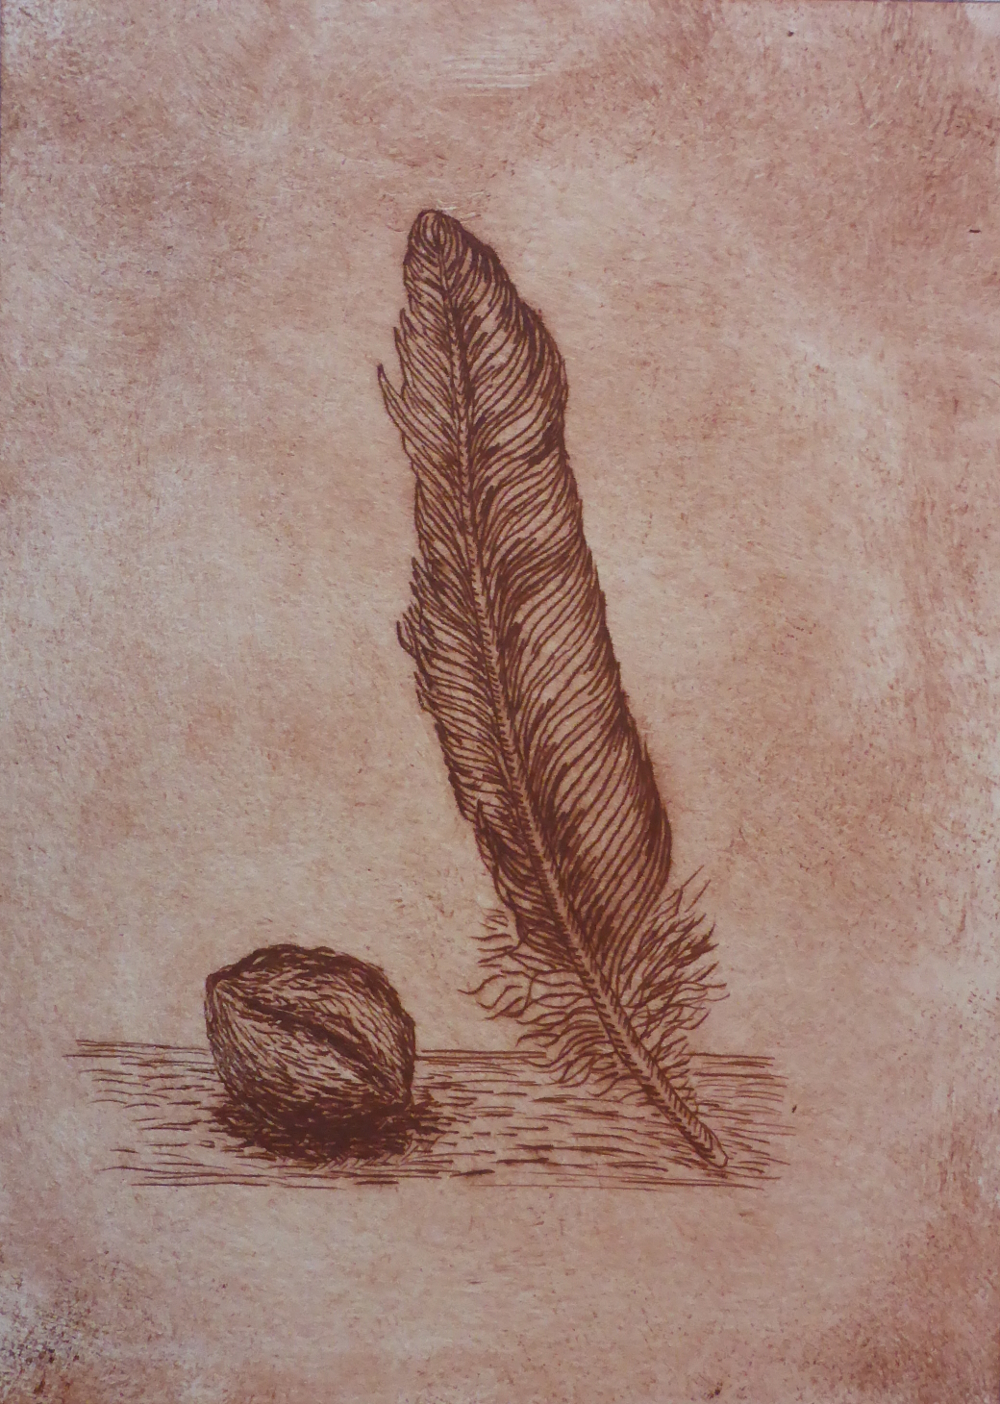 """""""Feather and nut I"""", 2018, drypoint on paper, 15 x 21 cm"""